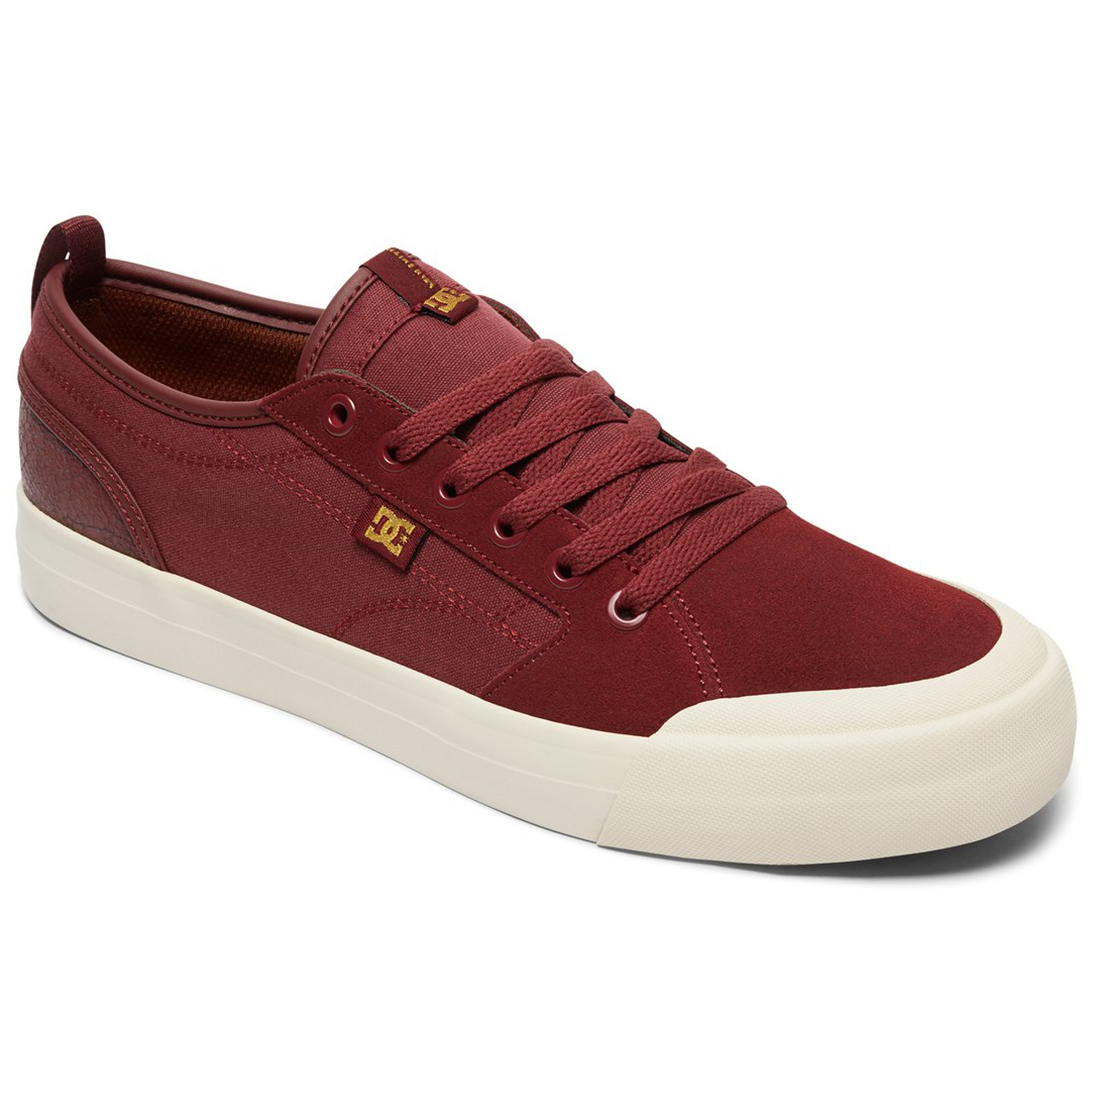 DC Shoes Mens Evan Smith Economical, stylish, and eye-catching shoes